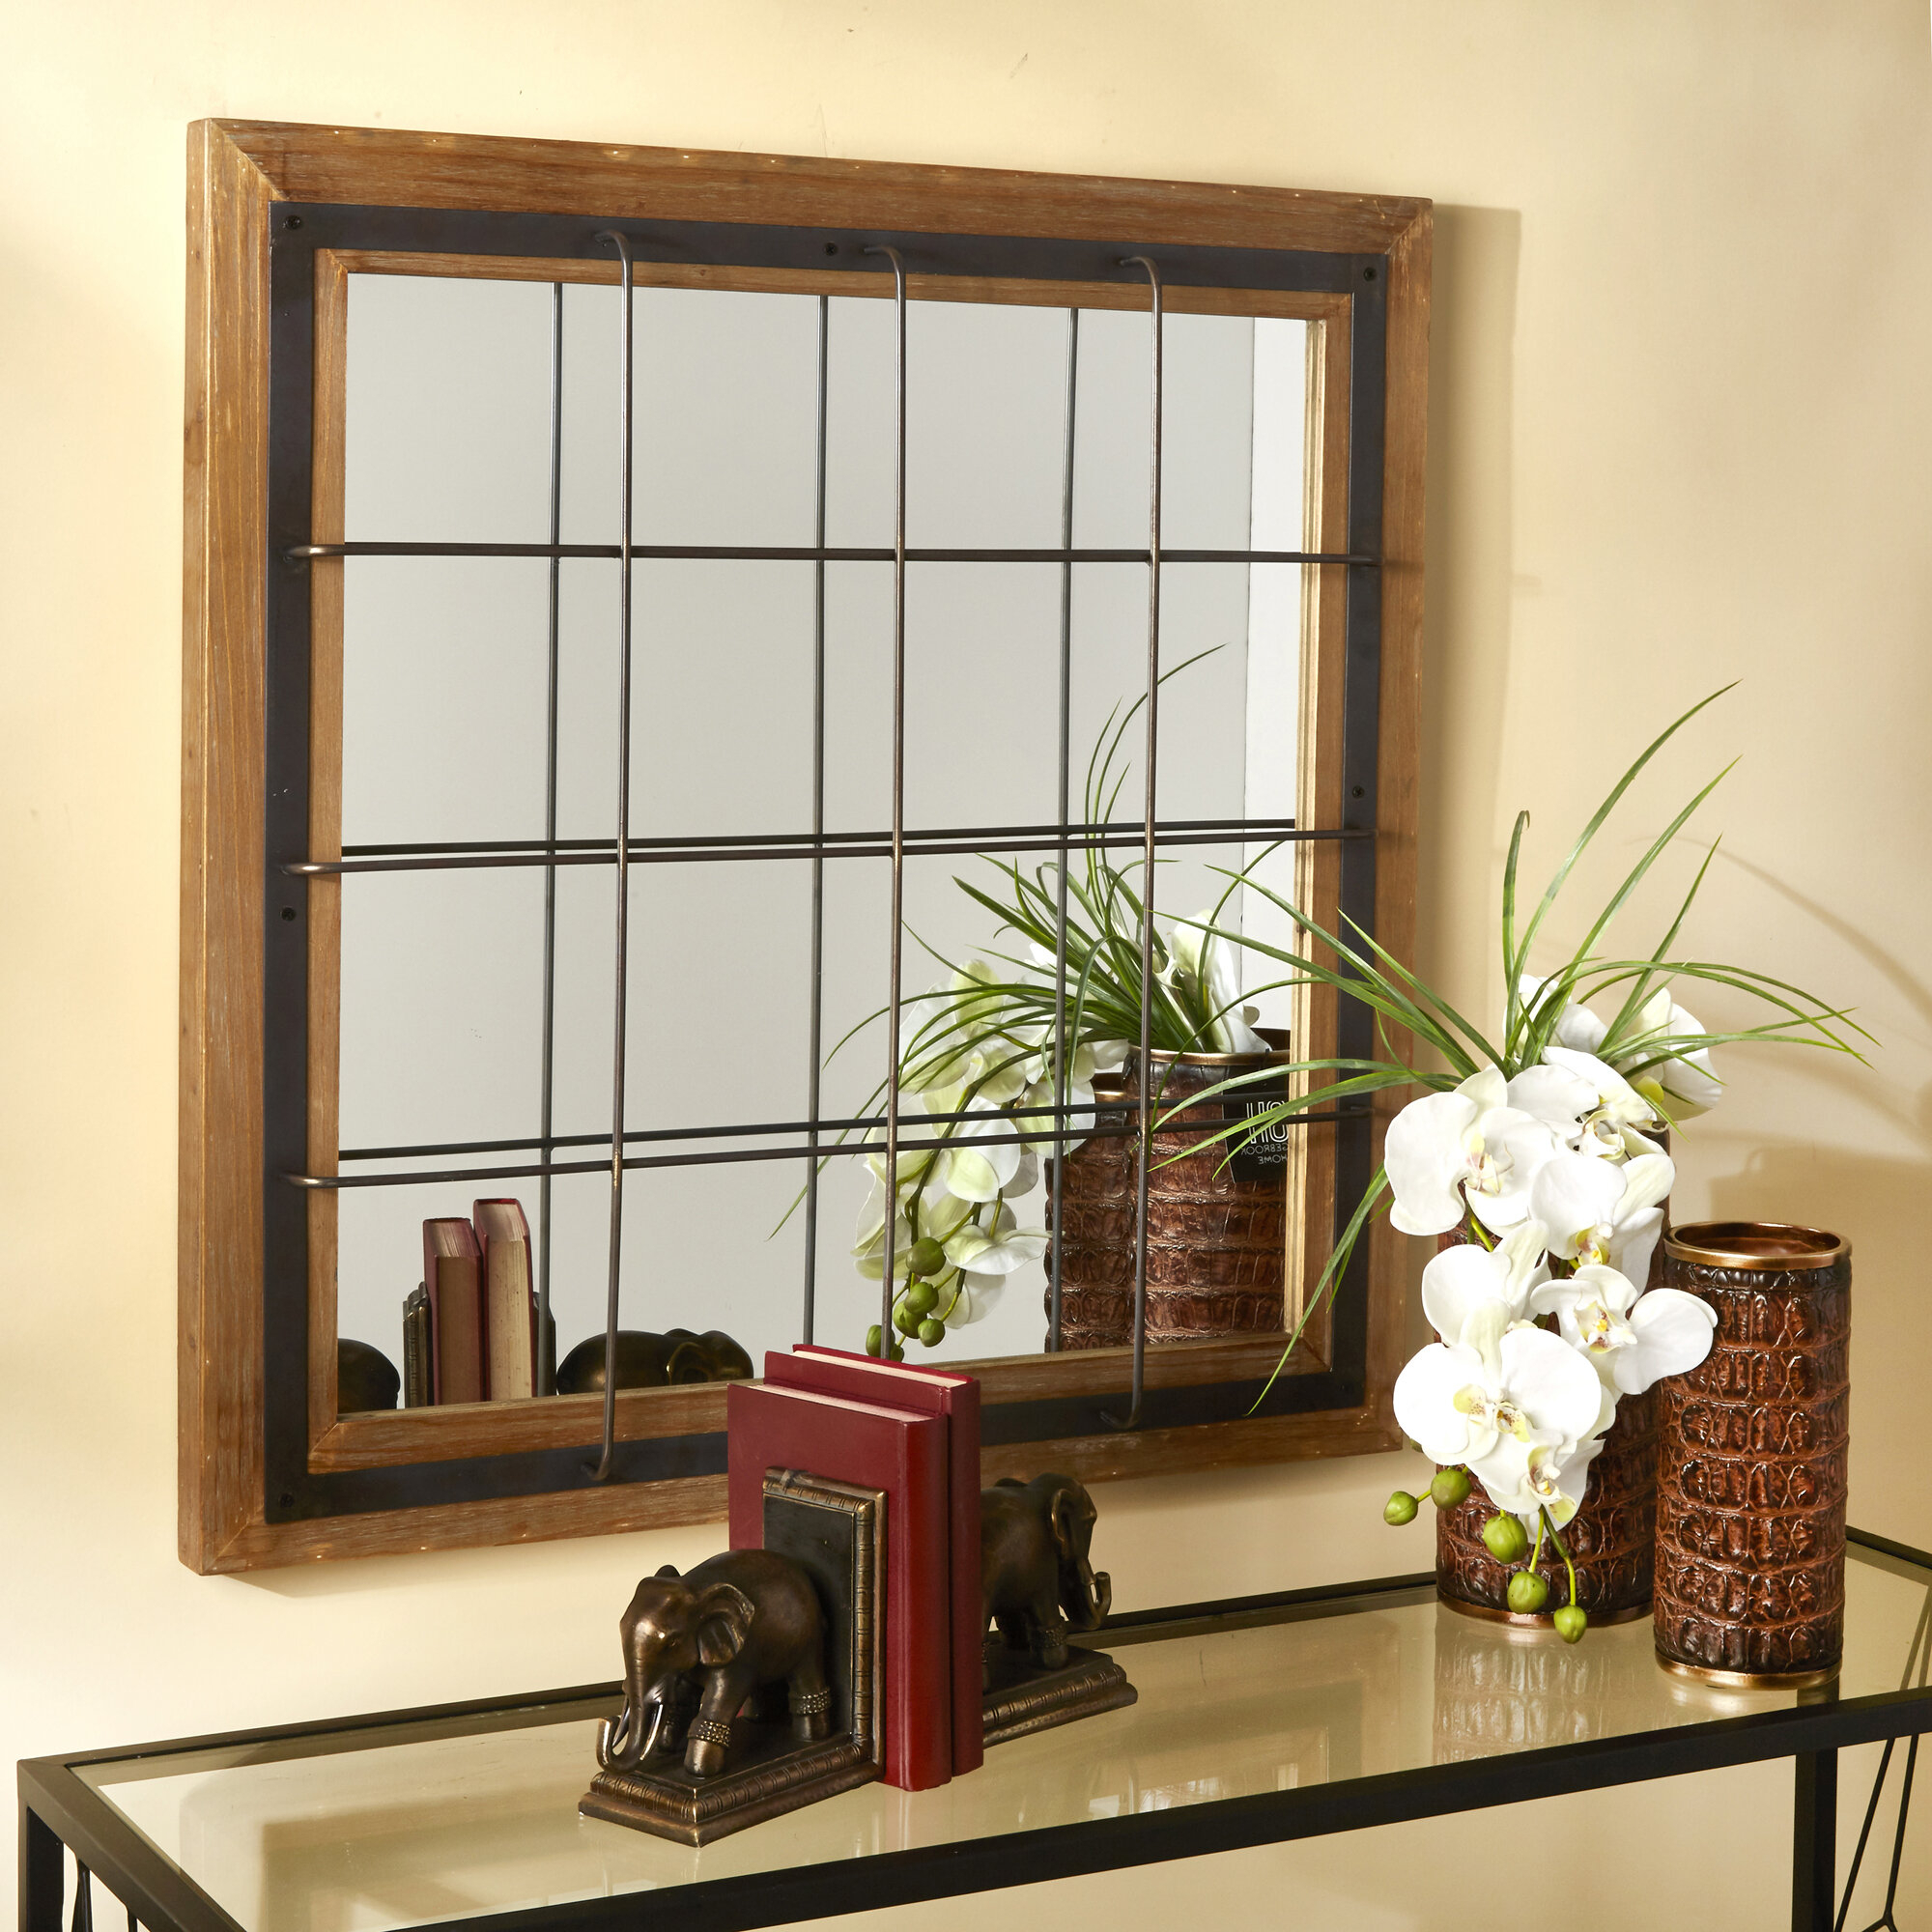 Leclair Windowpane Mirror Regarding Polito Cottage/country Wall Mirrors (Image 17 of 30)